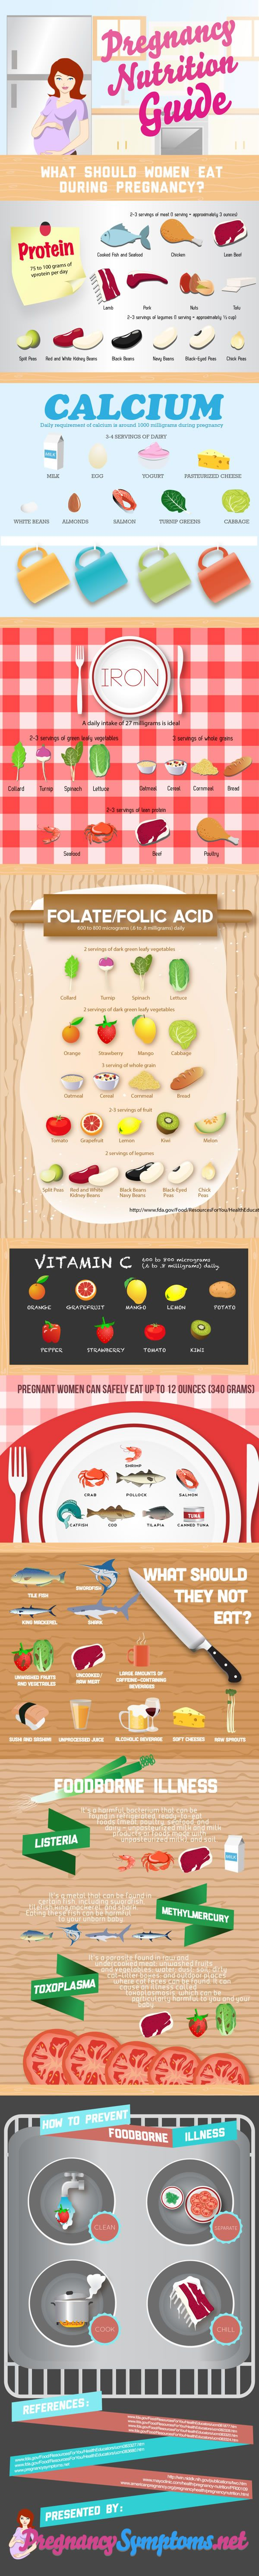 Pregnancy Nutrition Guide Infographic health